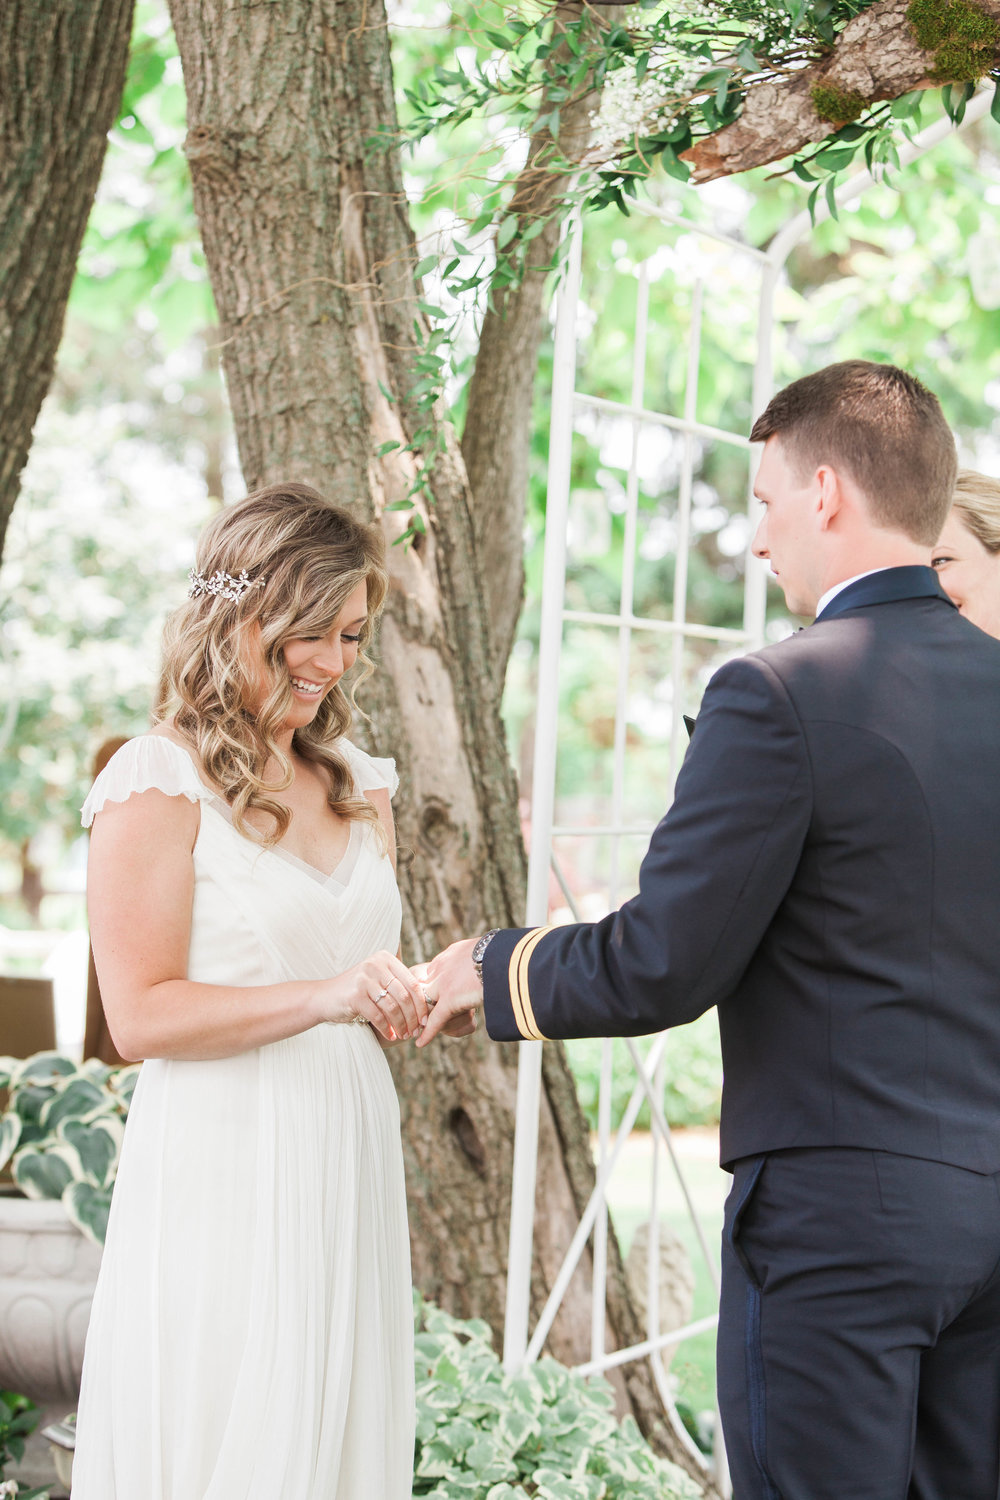 Bride and groom exchanging rings at intimate wedding